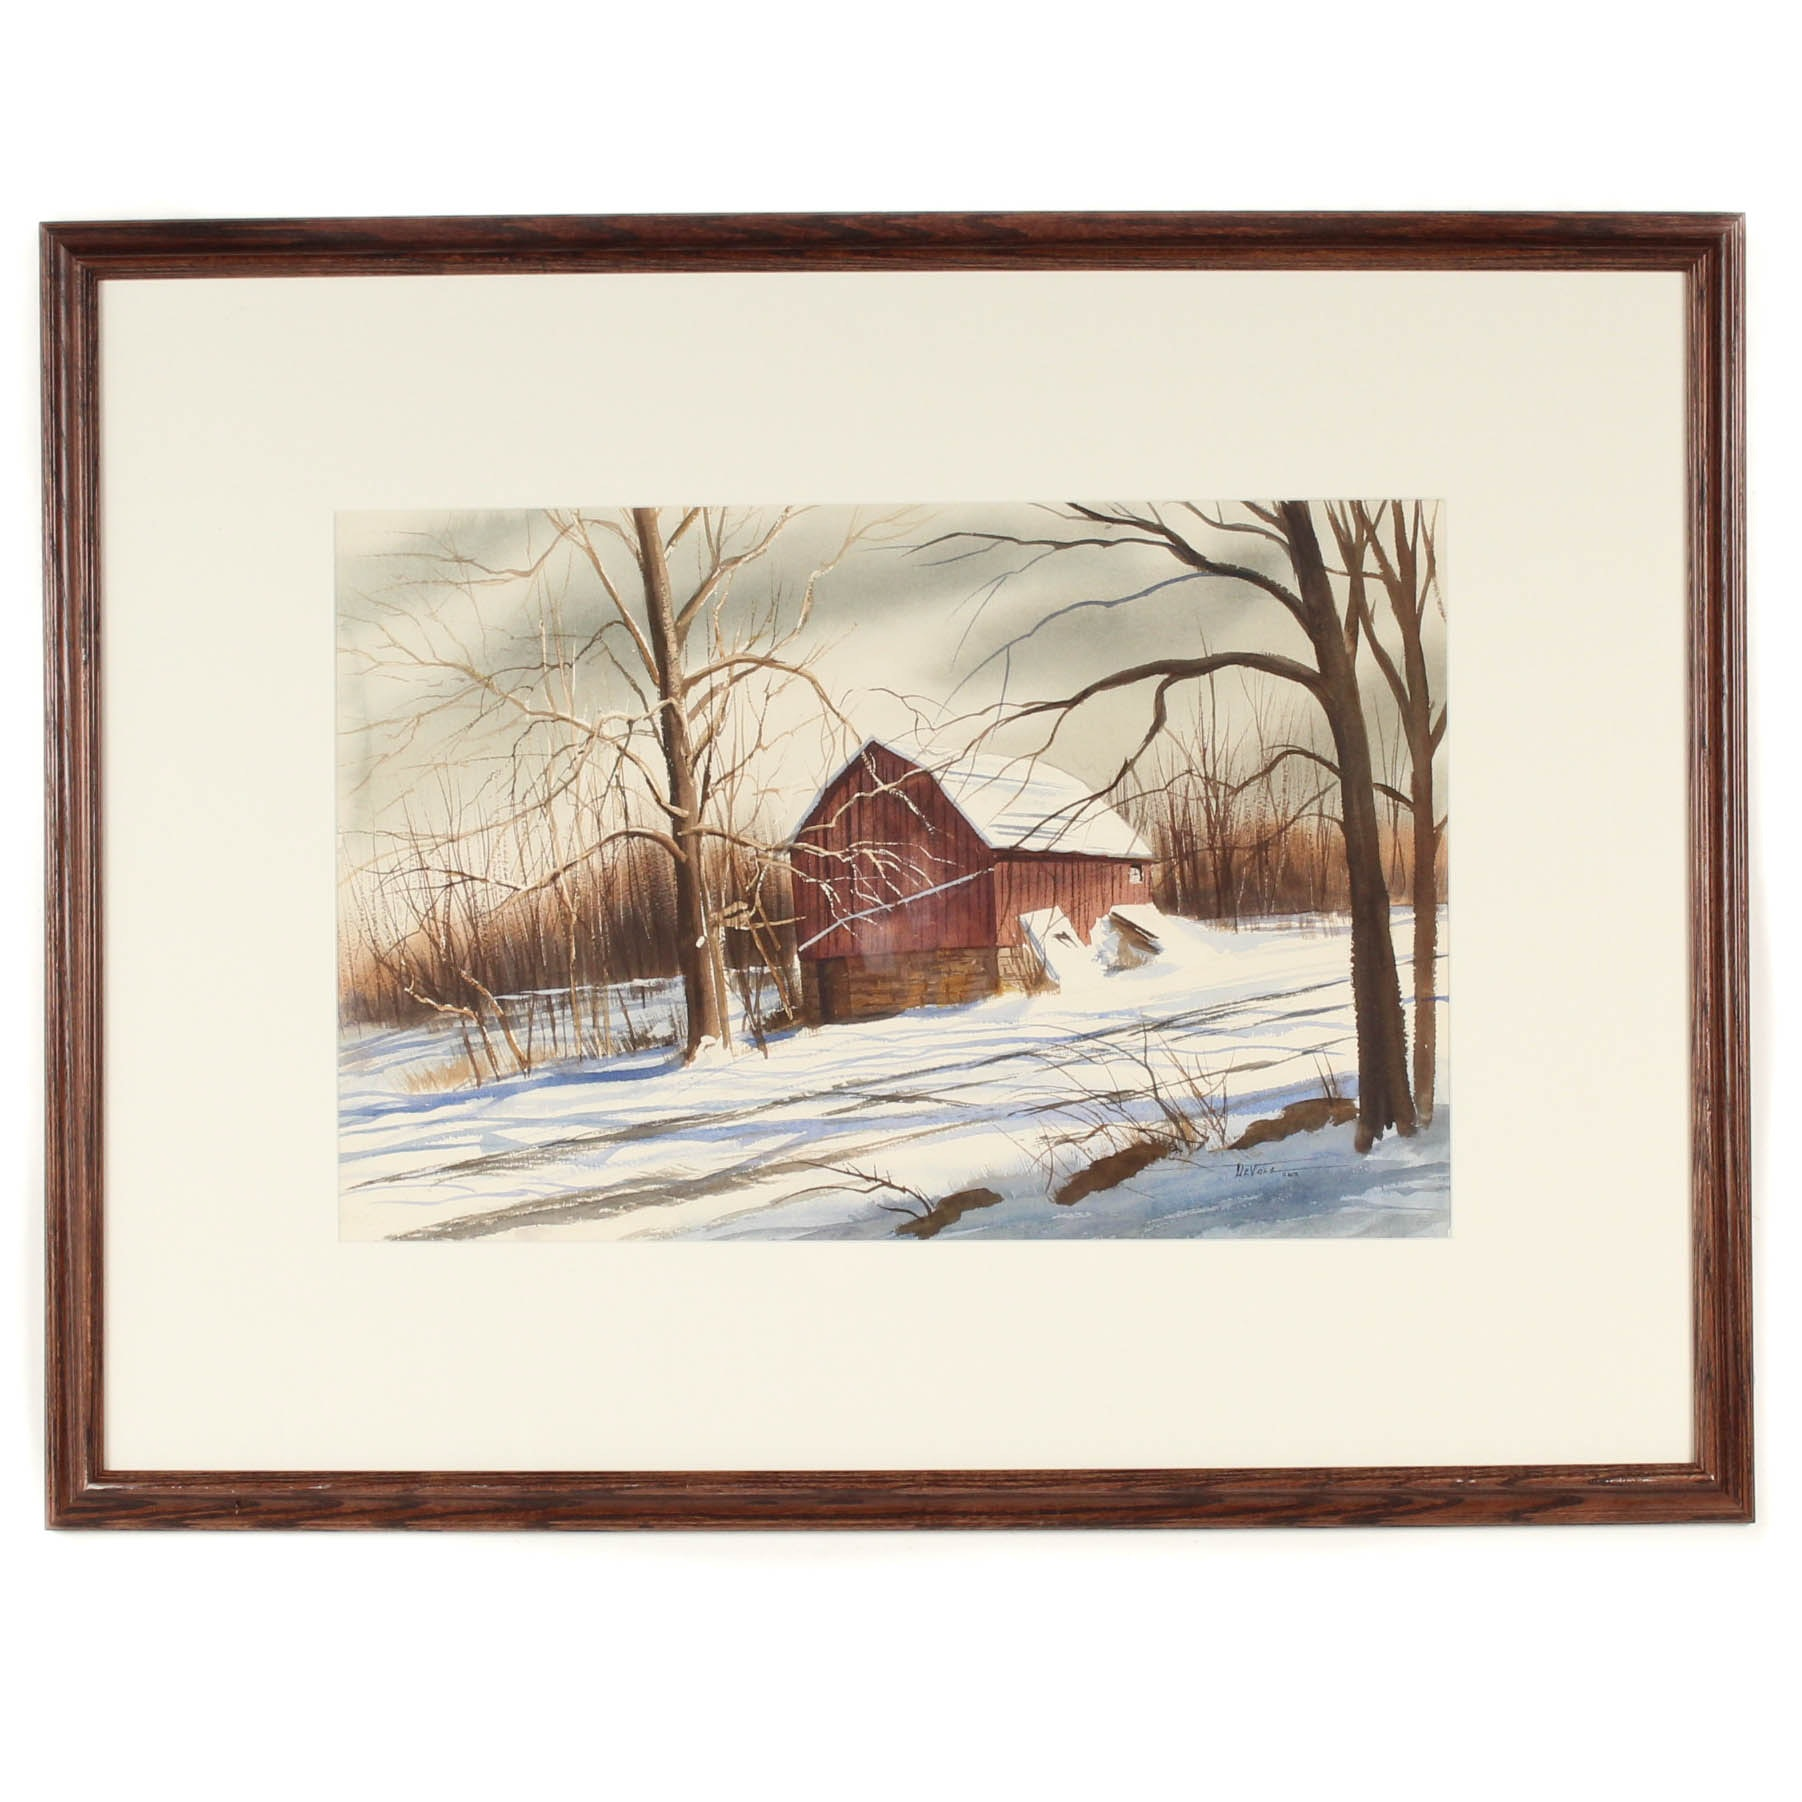 James DeVore Winter Landscape Watercolor